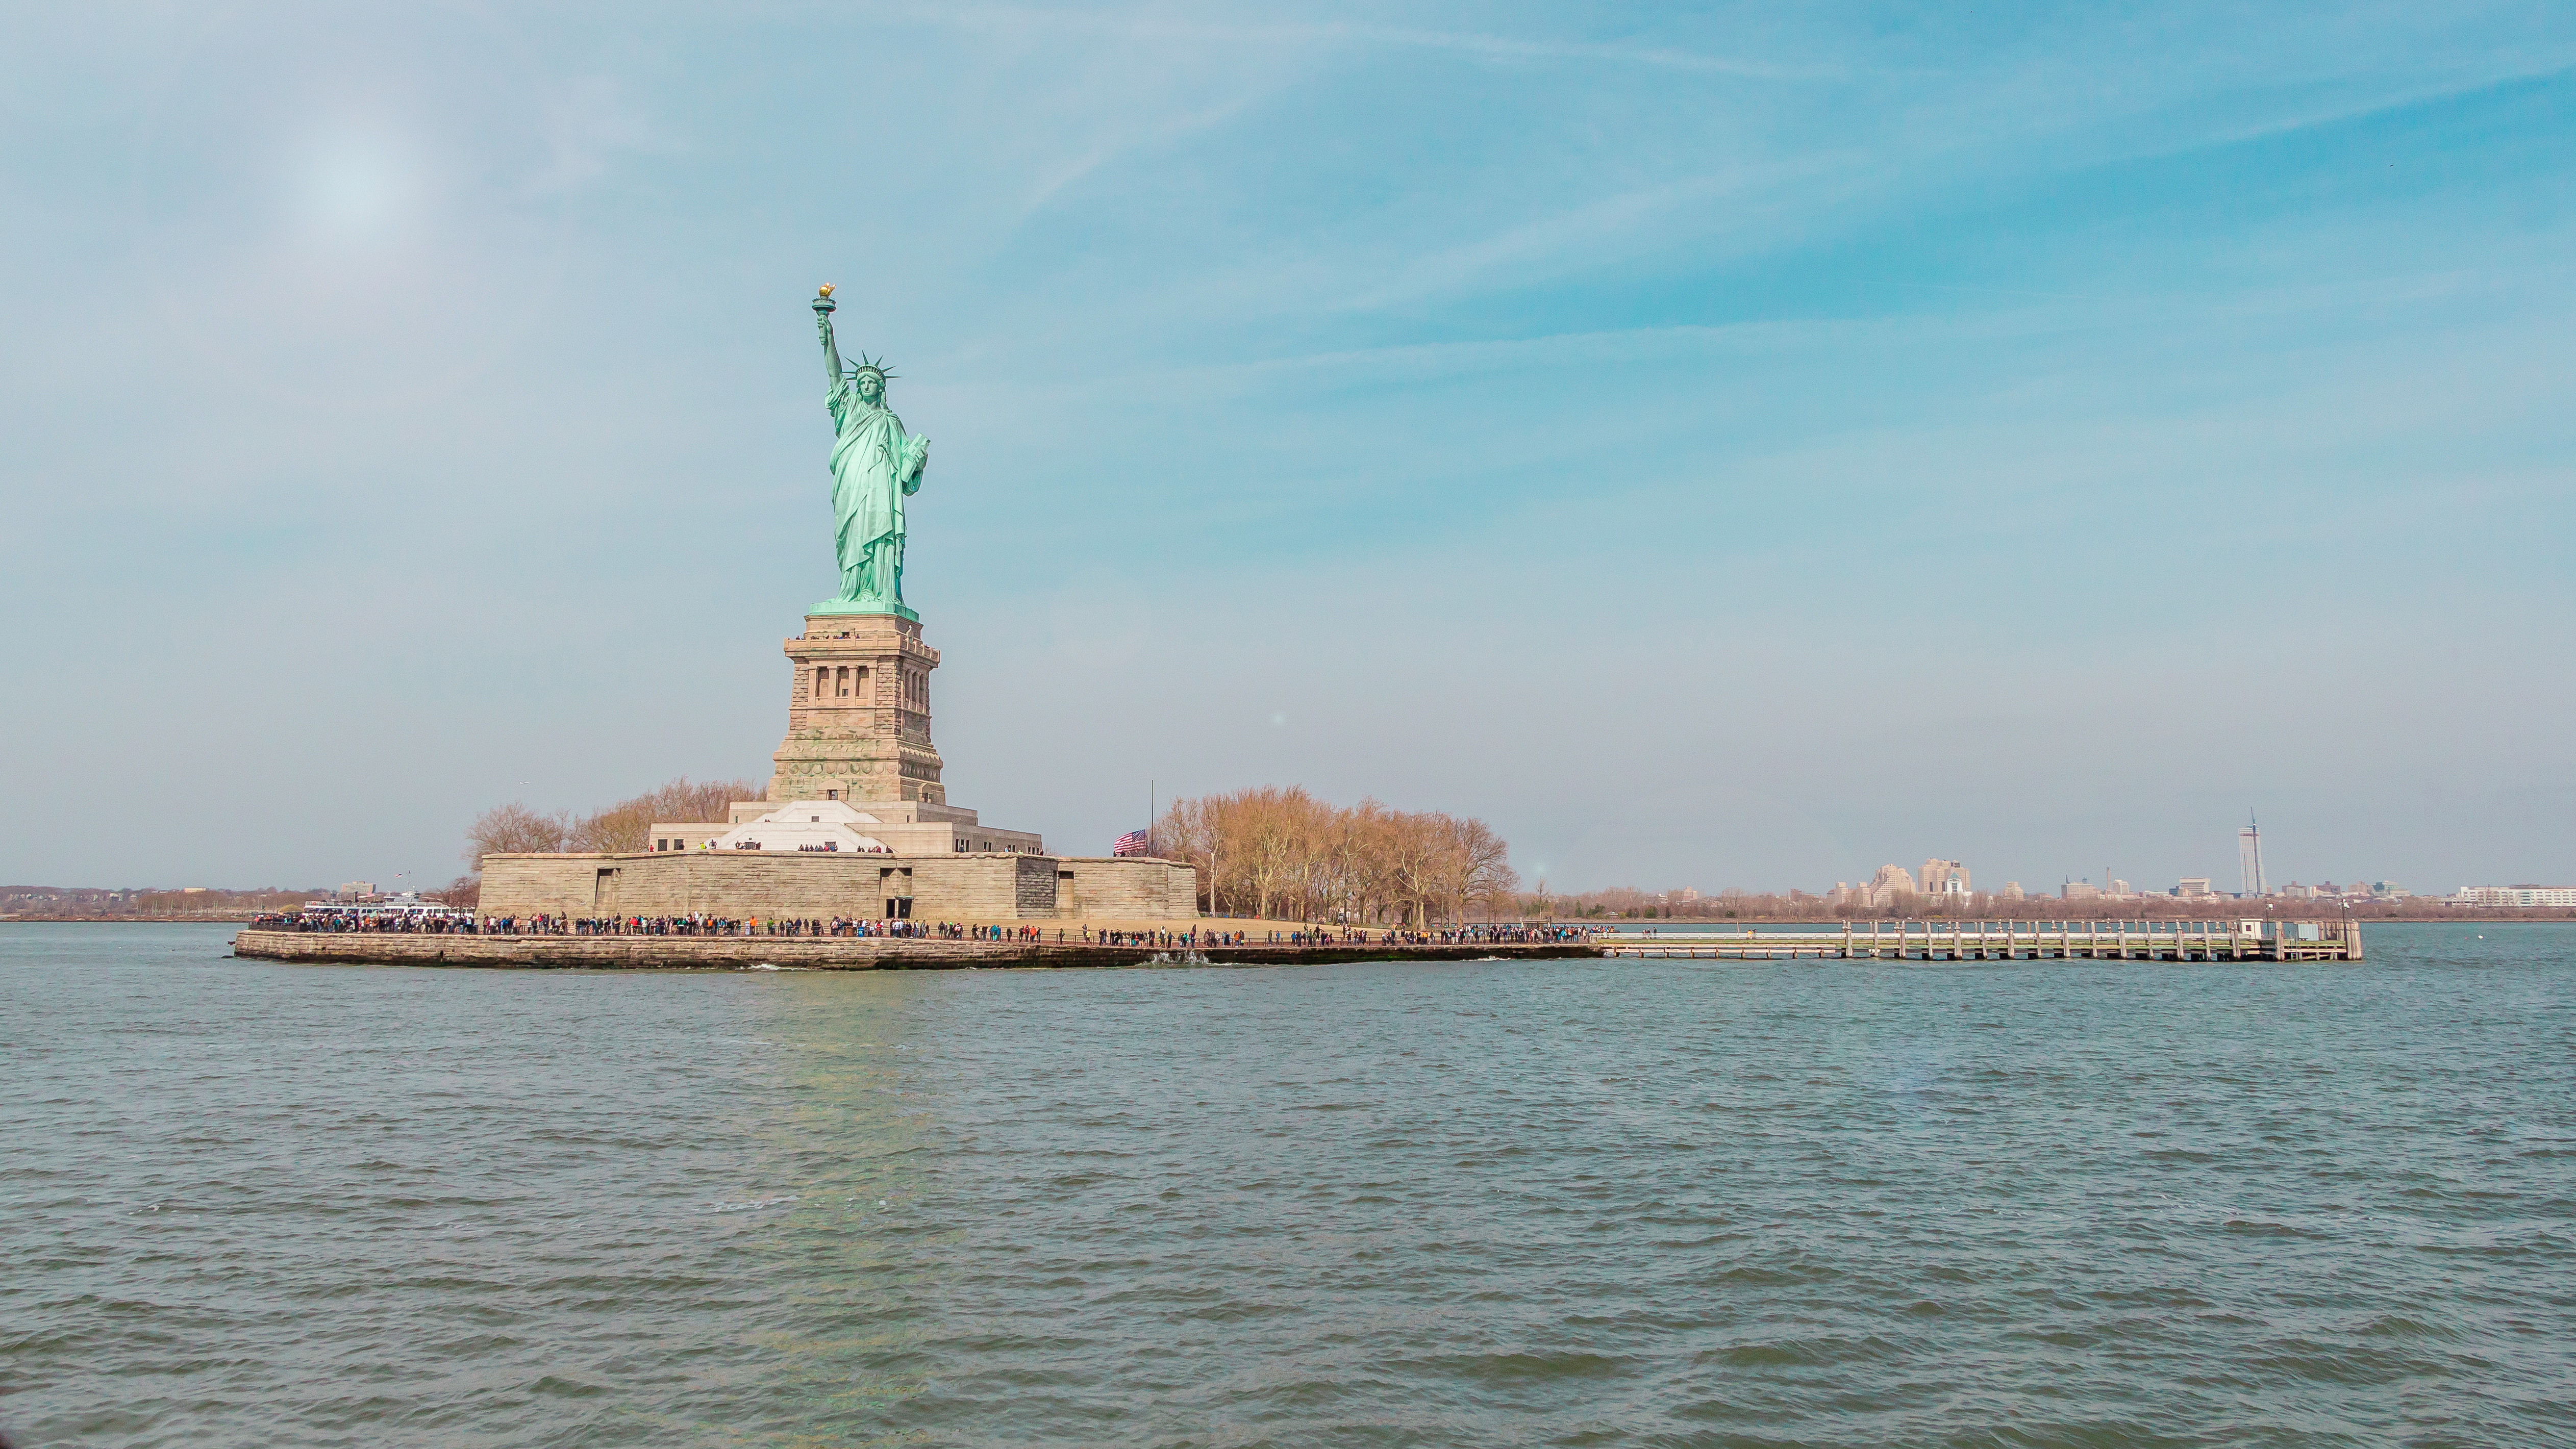 New York Gives Supply Chains a Boost